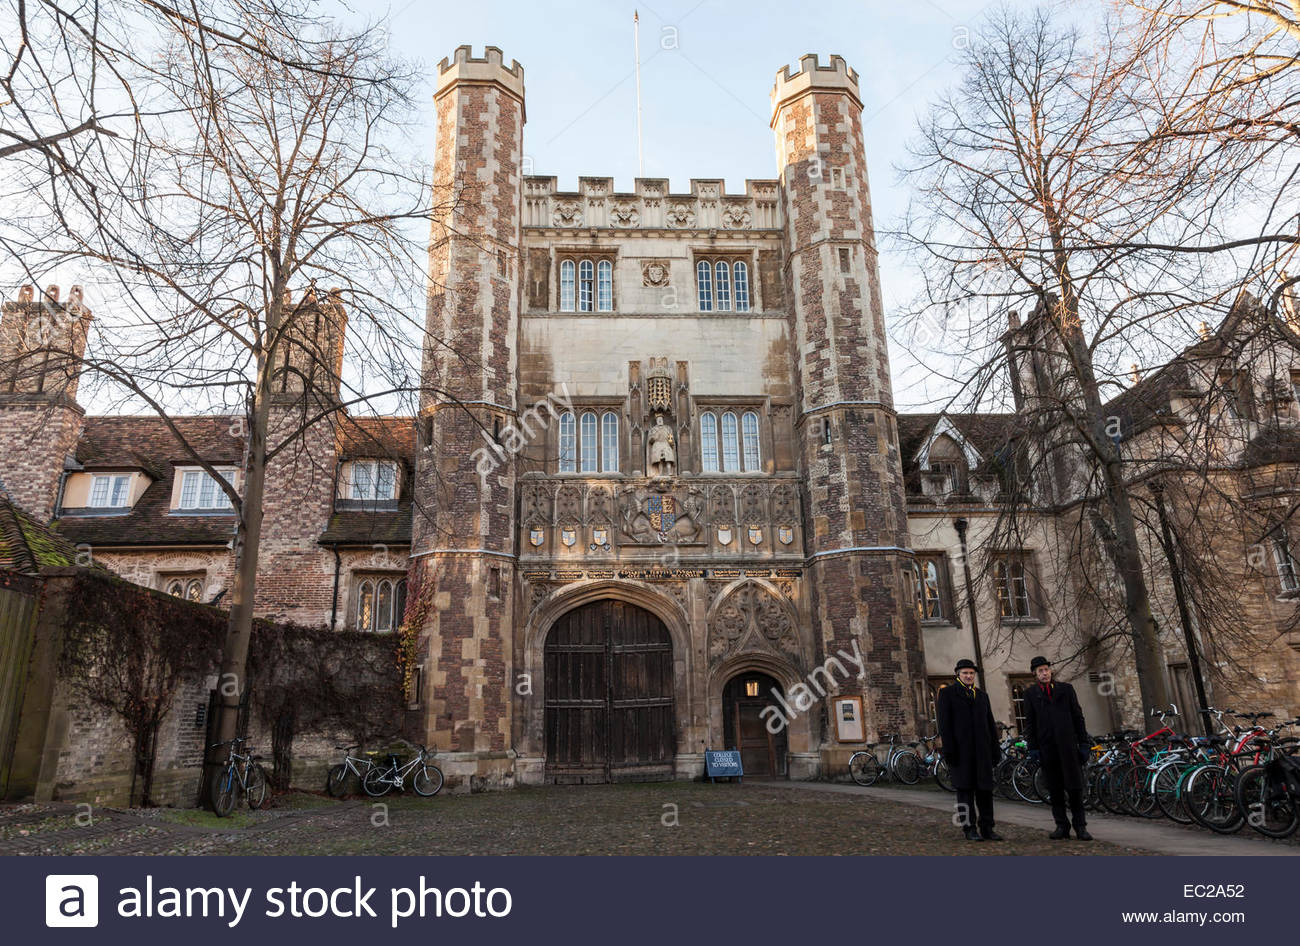 Porters outside the main entrance to Trinity College, Cambridge, England, UK - Stock Image